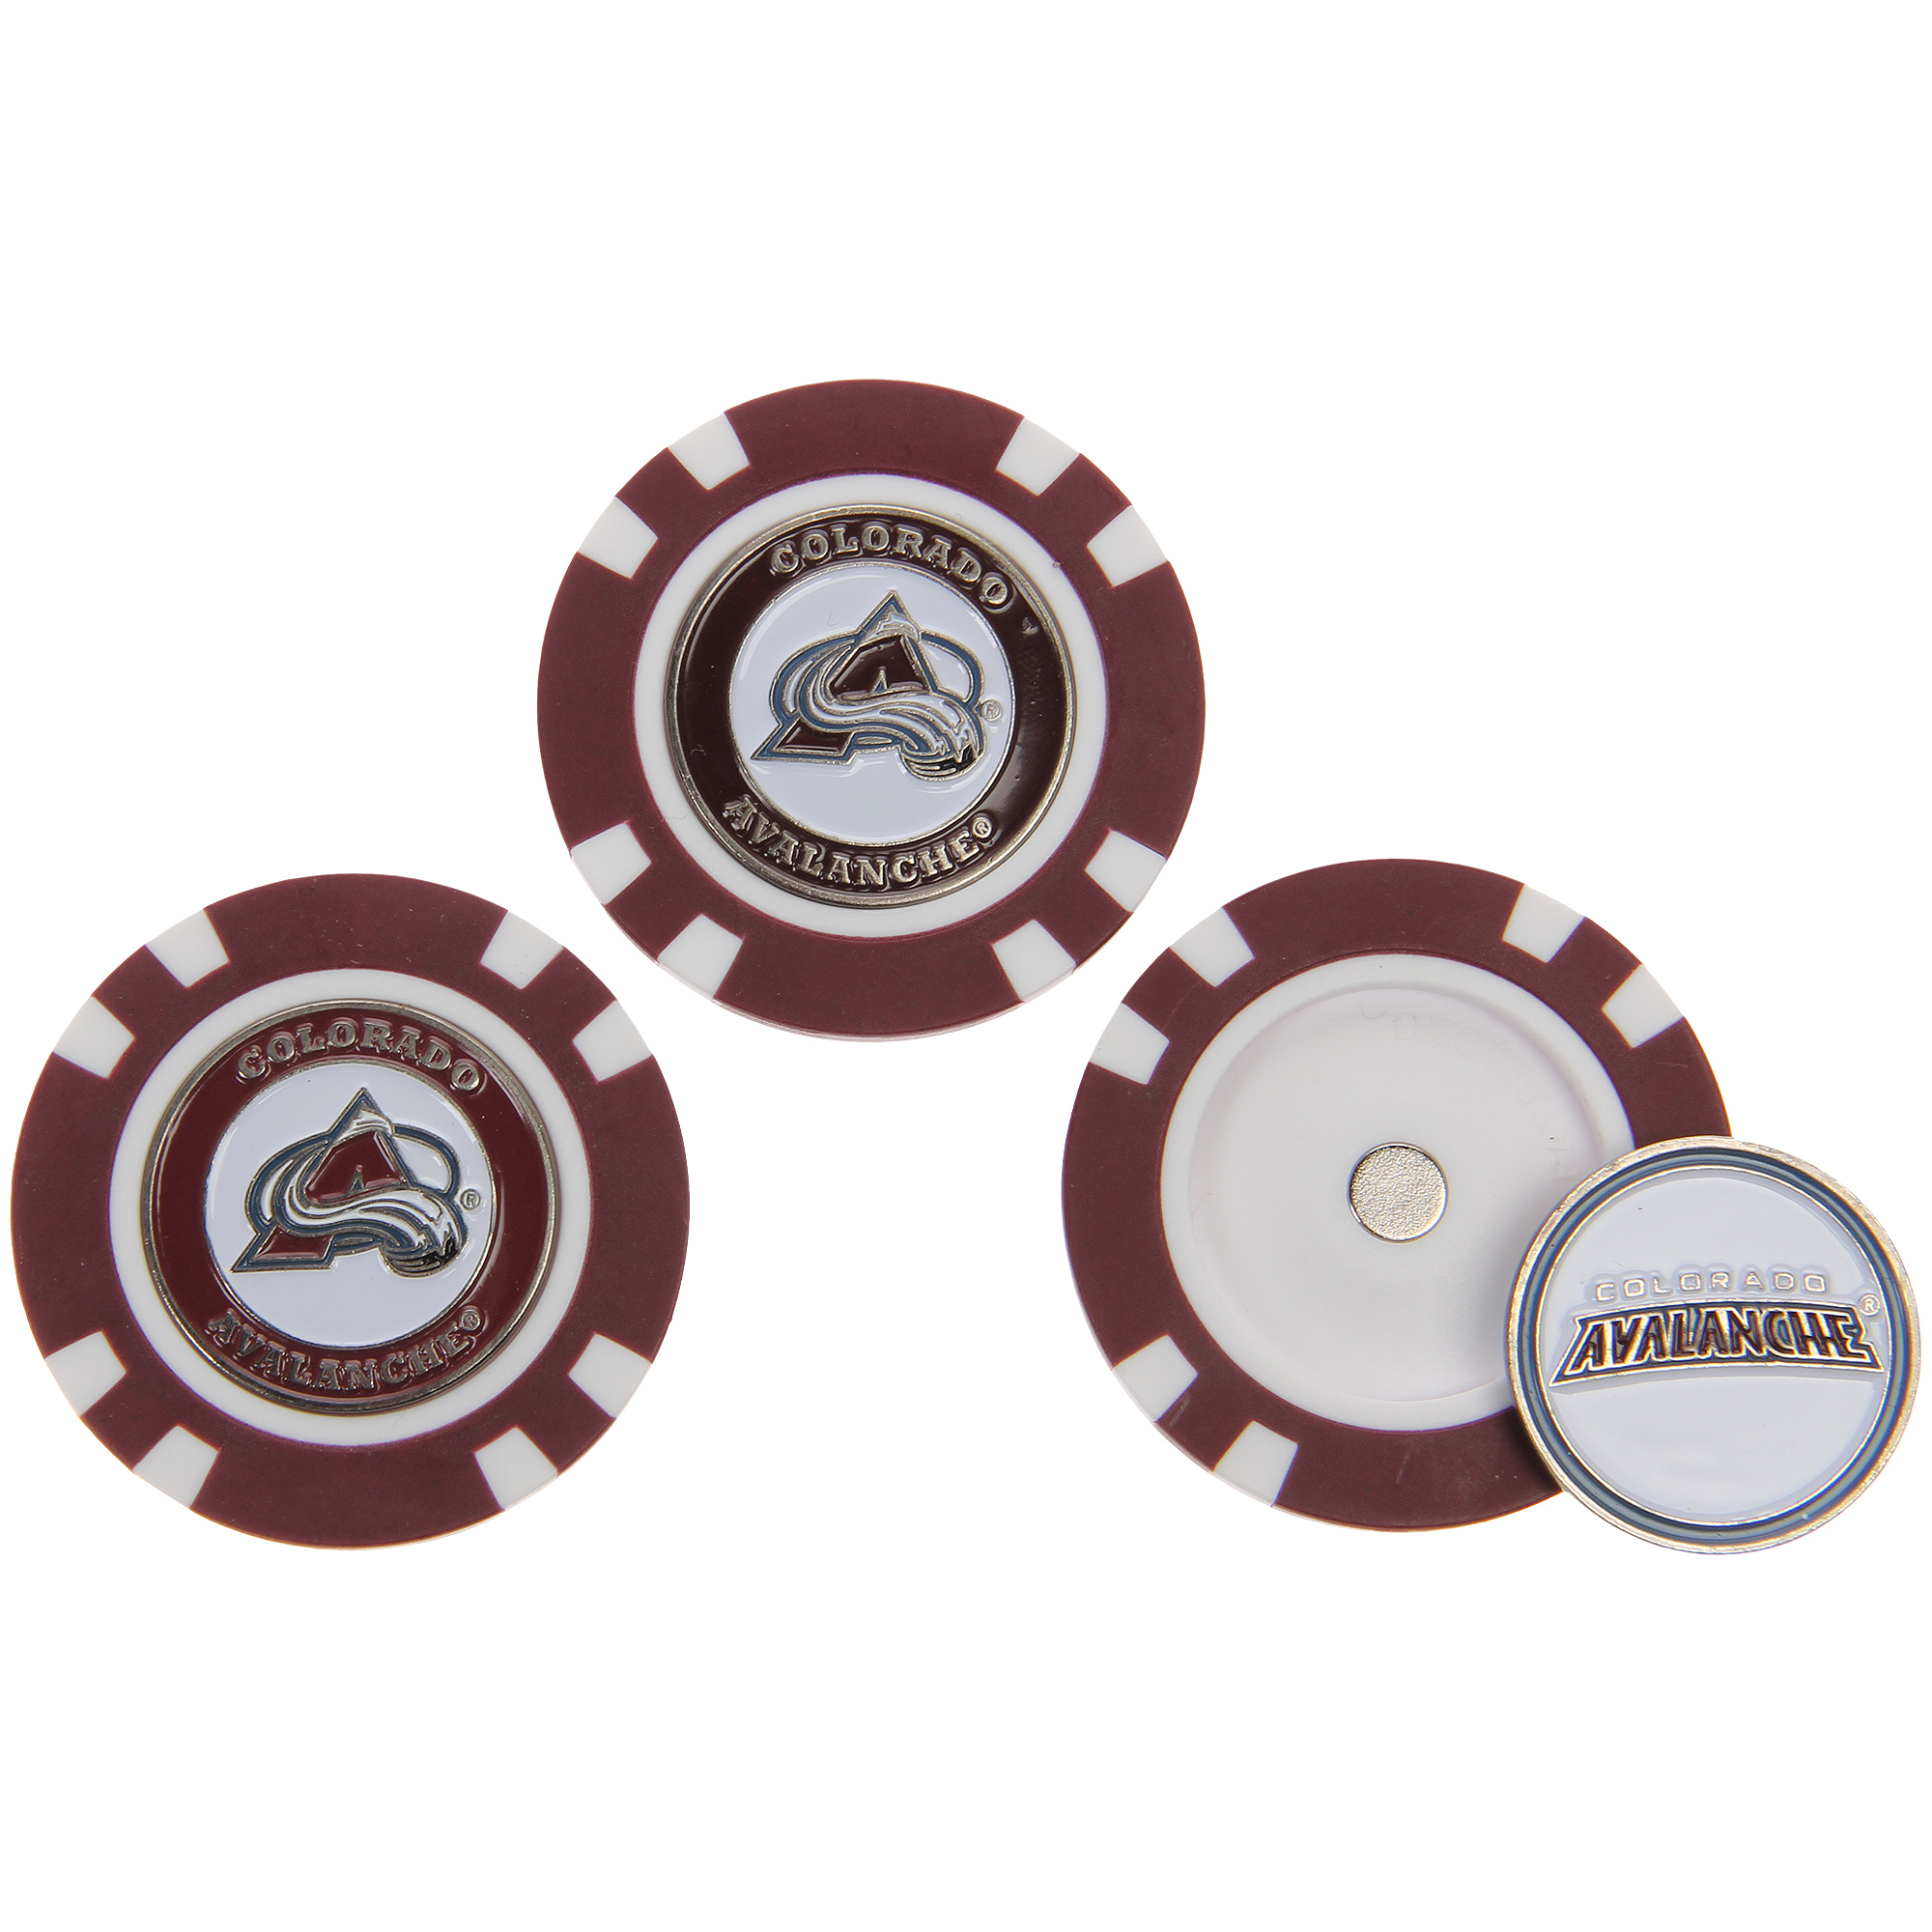 Colorado Avalanche 3-Pack Poker Chip Golf Ball Markers - No Size